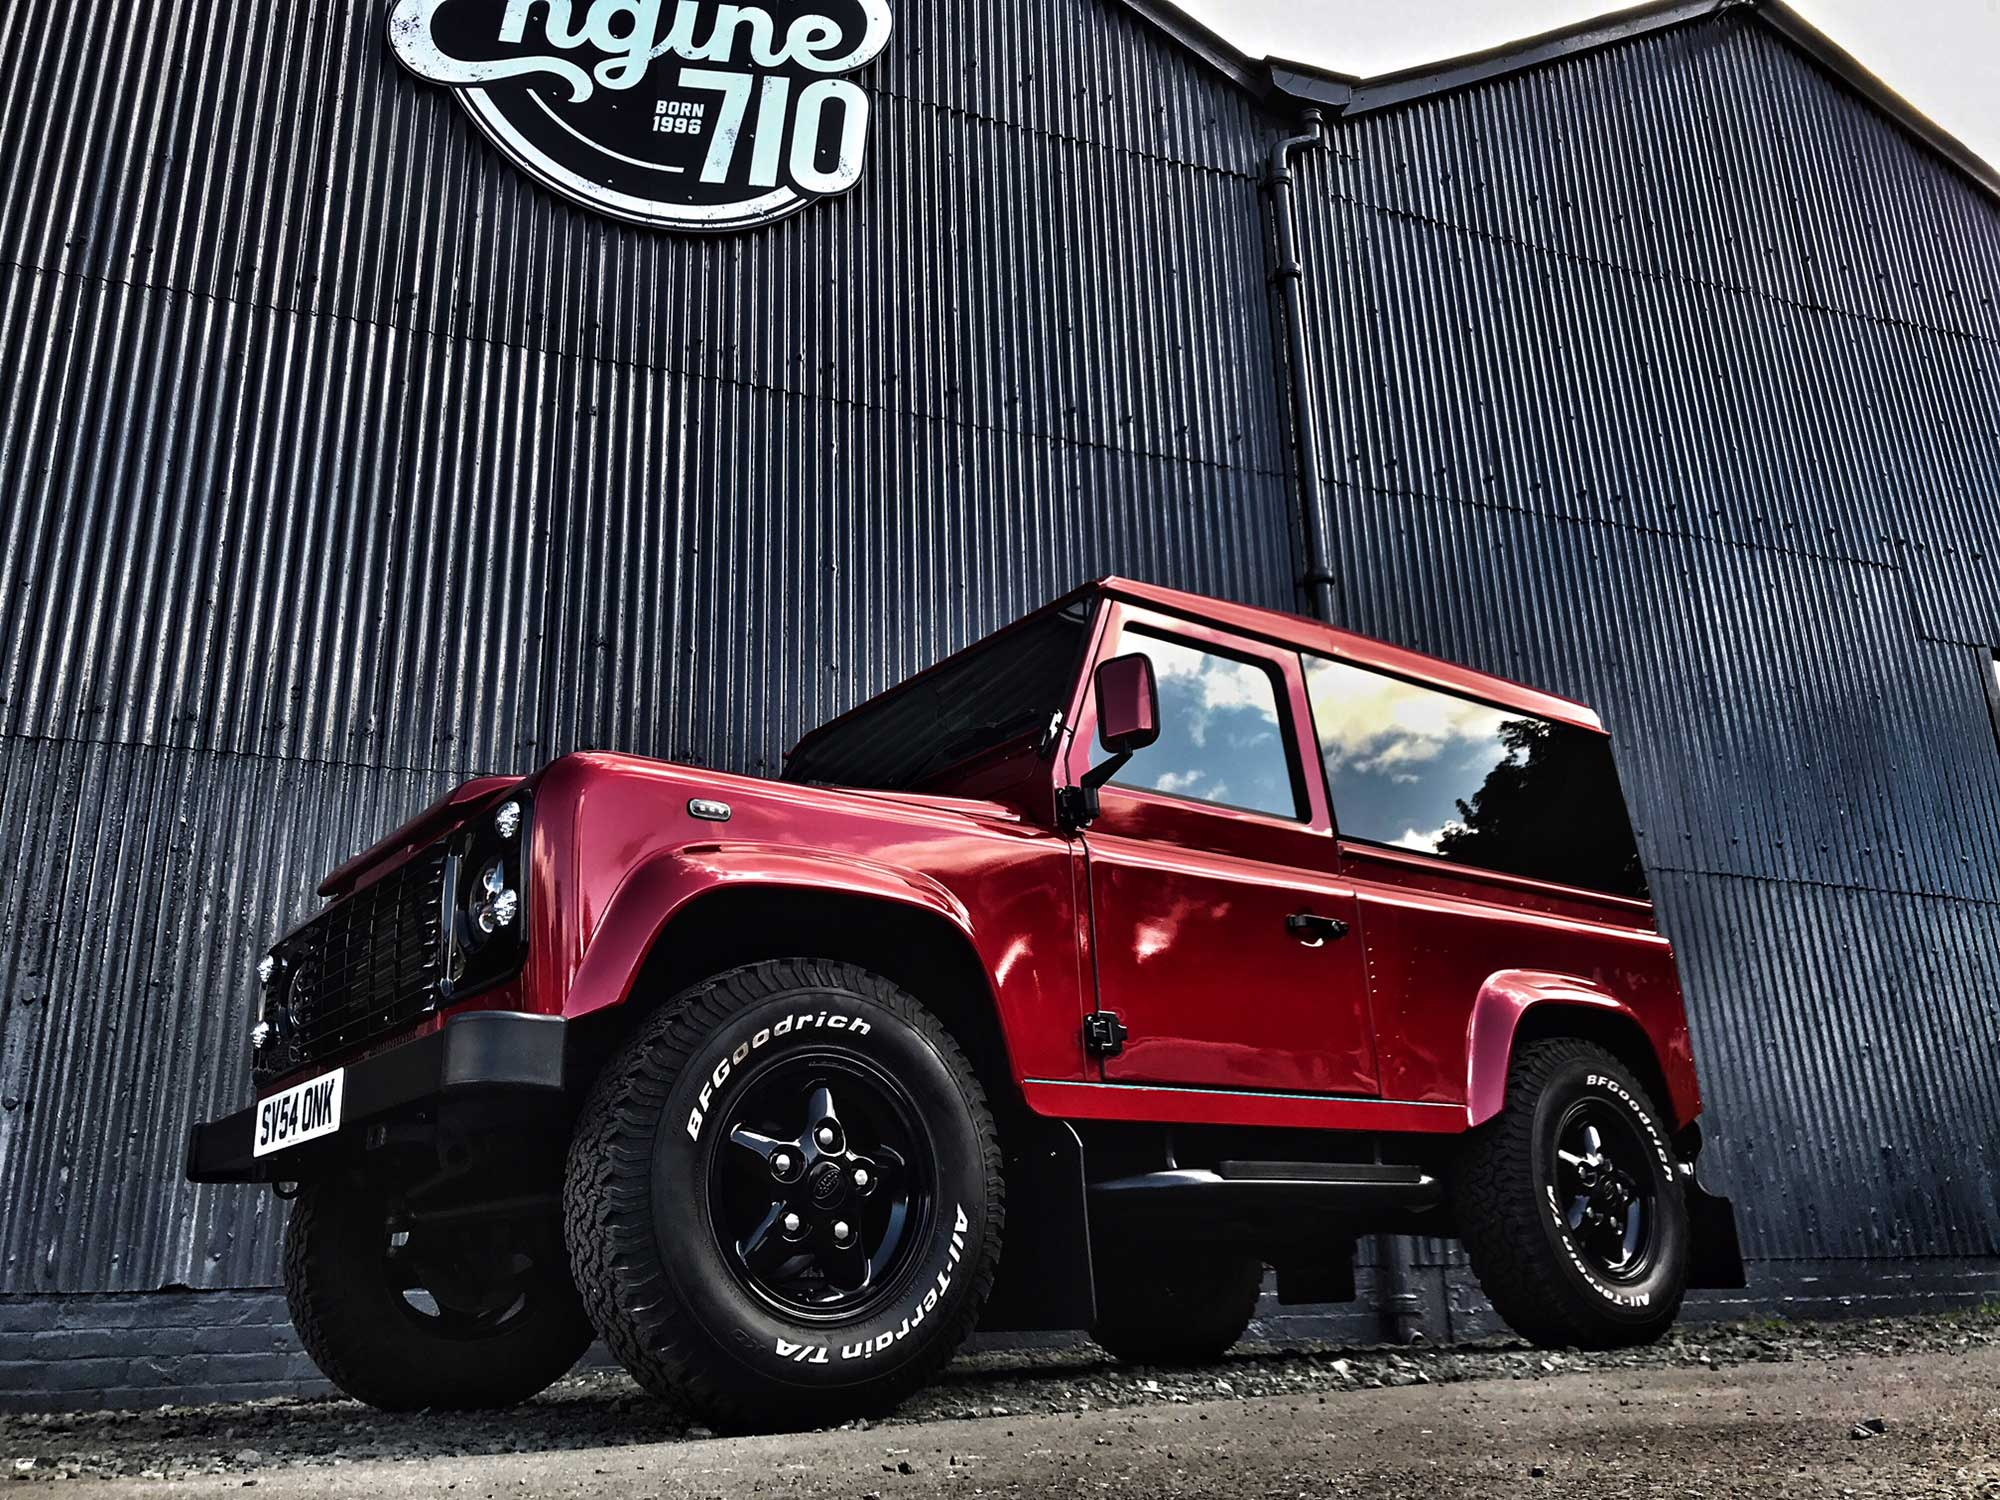 Modified Defender by Engine 710